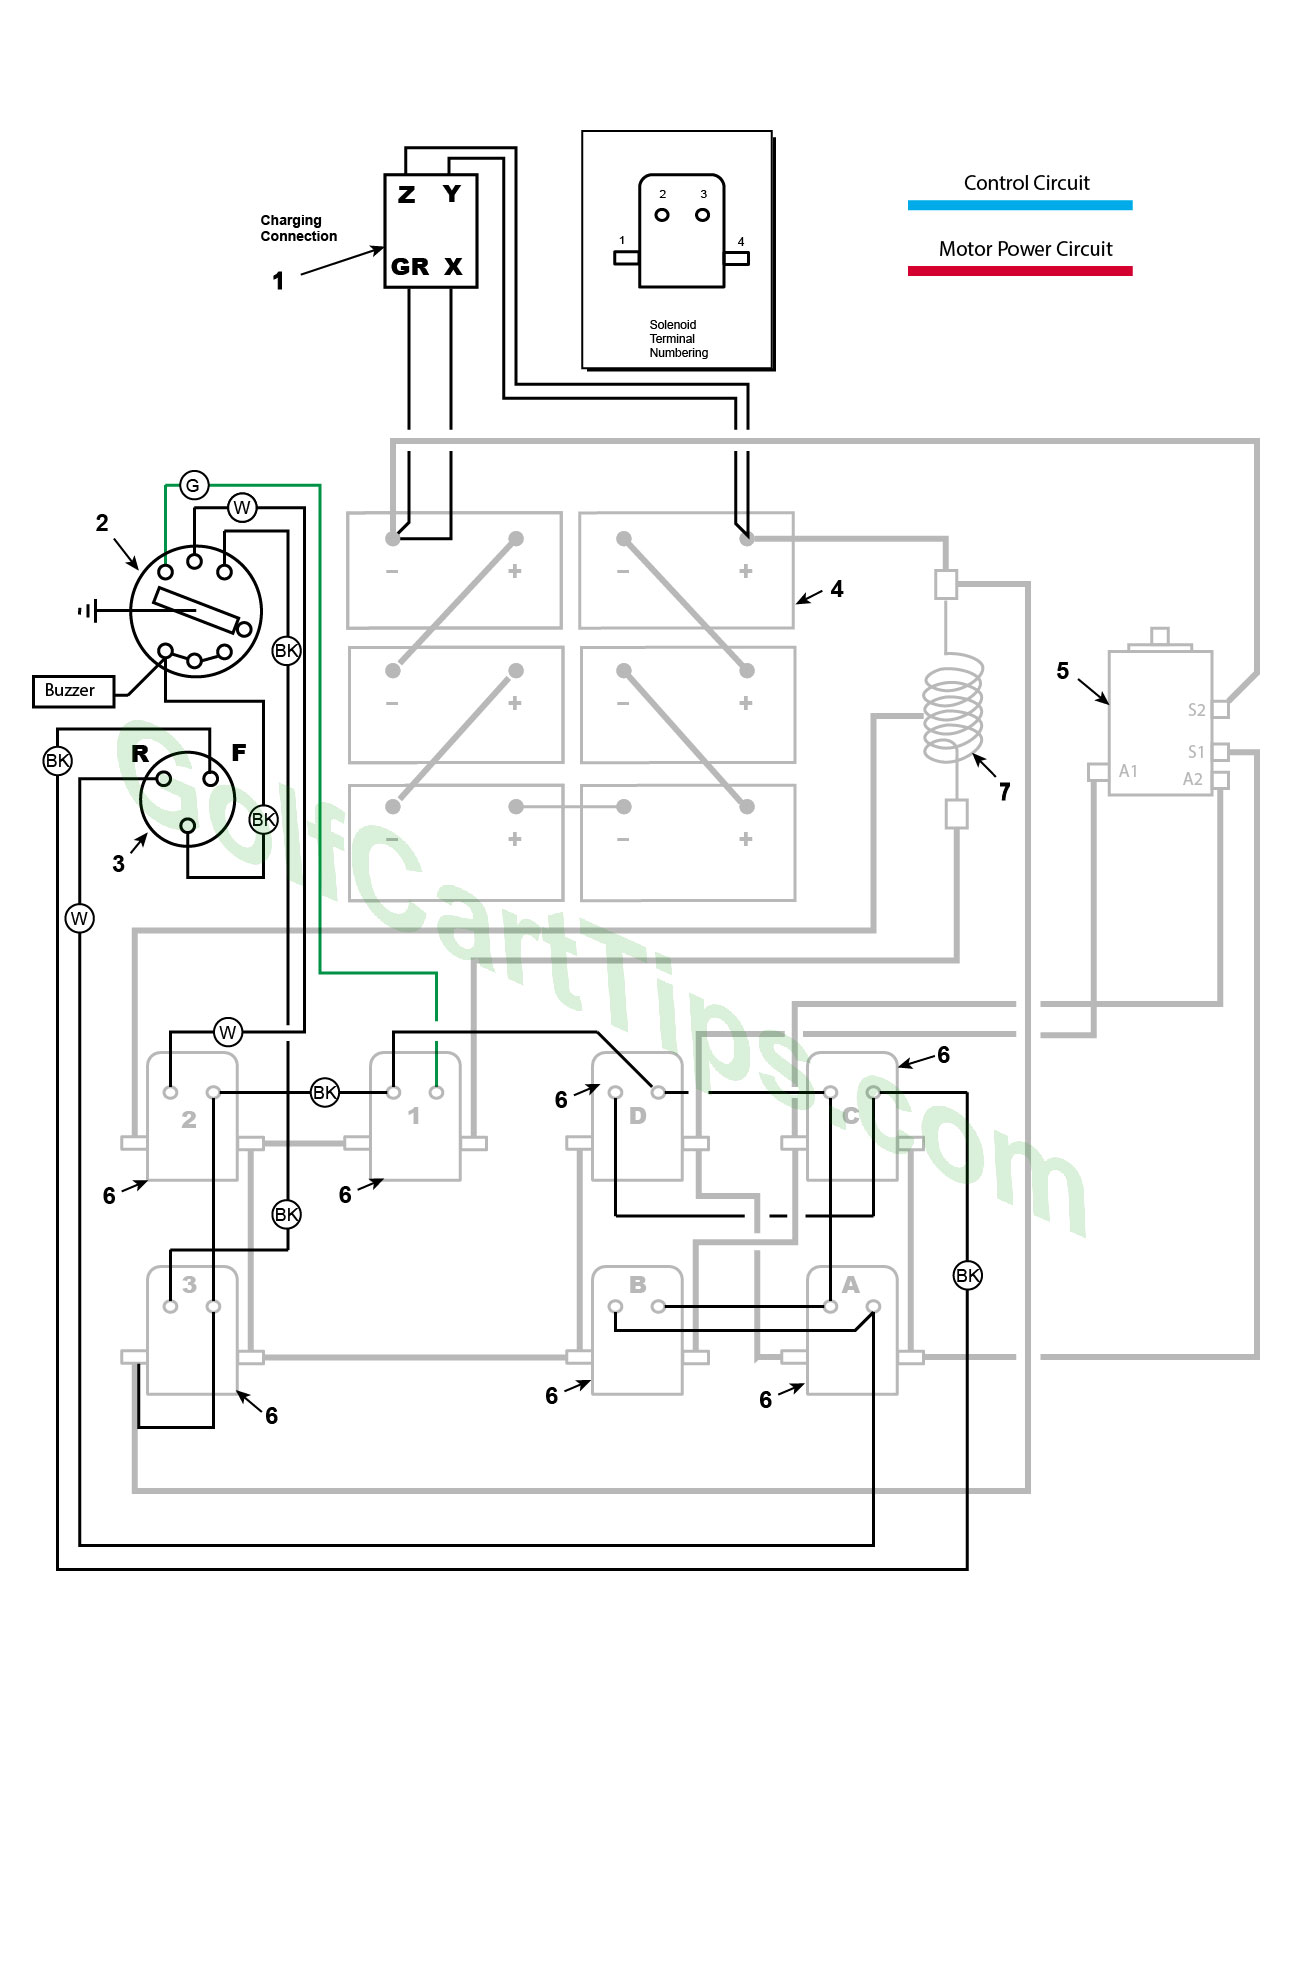 hight resolution of ezgo wiring diagrams model 300 late 1950 s accessories wiring diagram ezgo buzzer wiring diagram